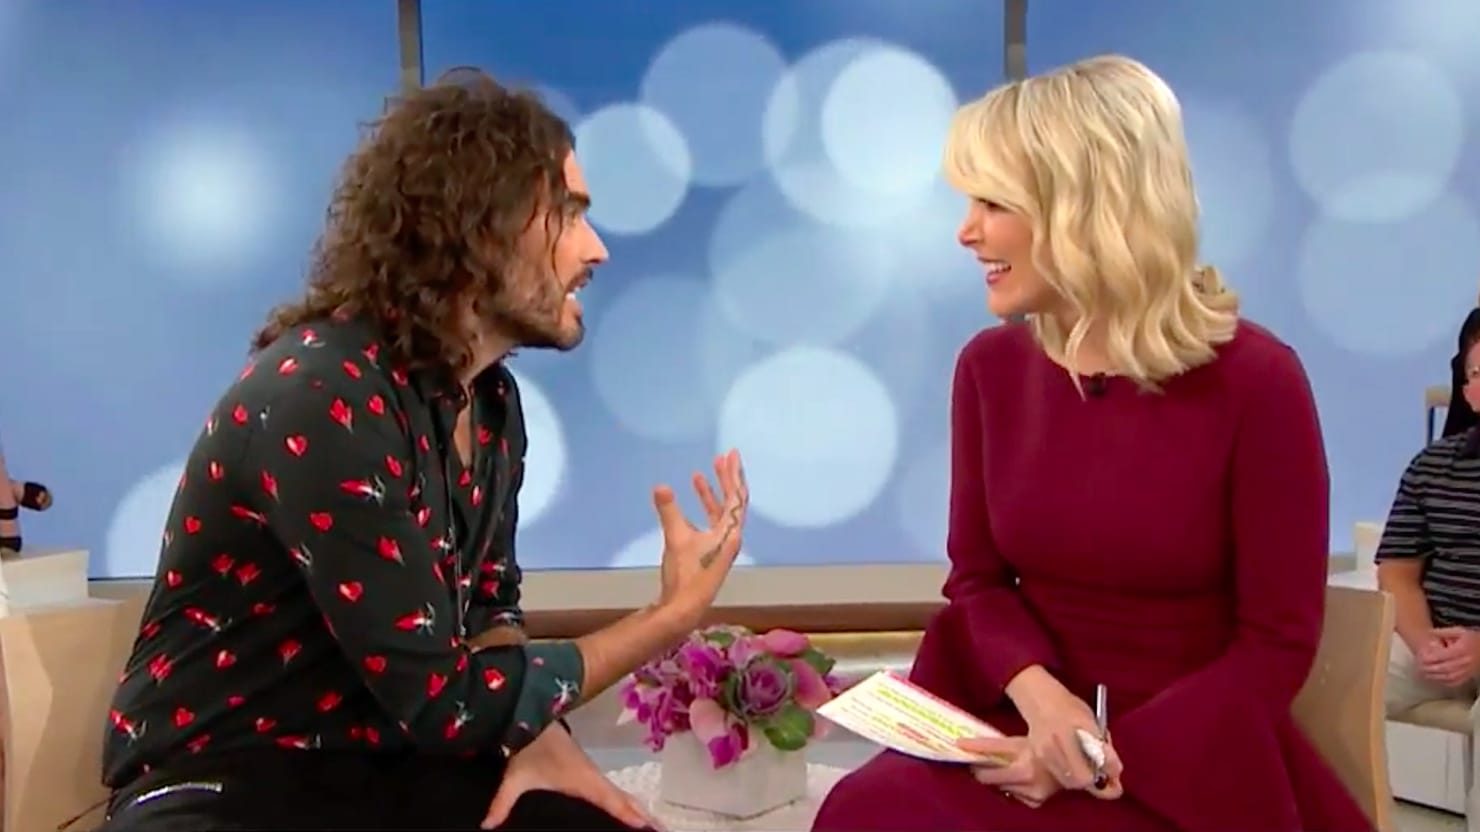 Russell Brand at an in person interview on live television.